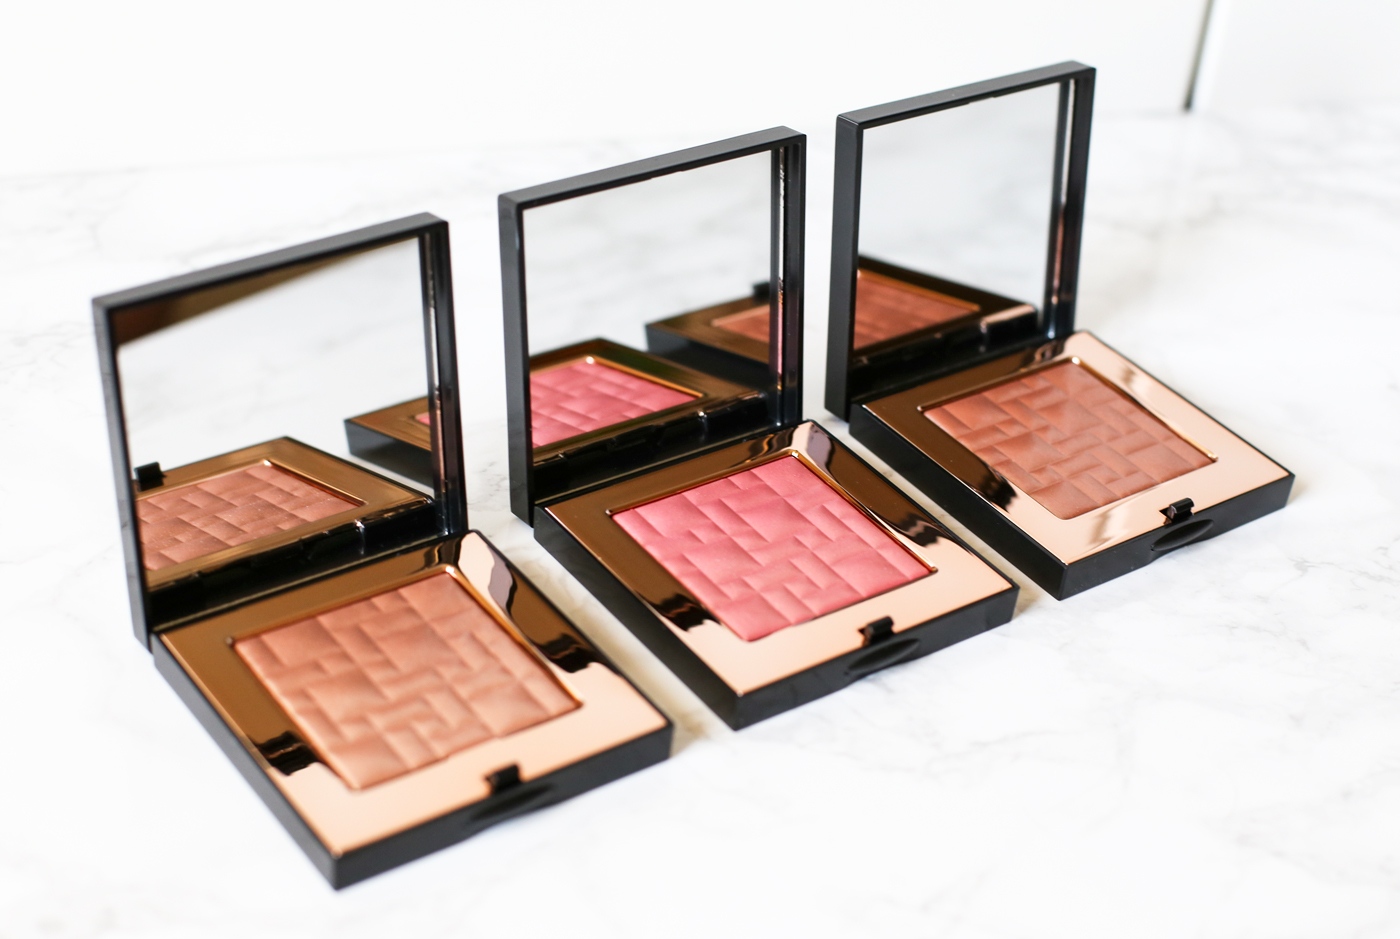 TAOS-Bobbi-Brown-Highlighting-Powder